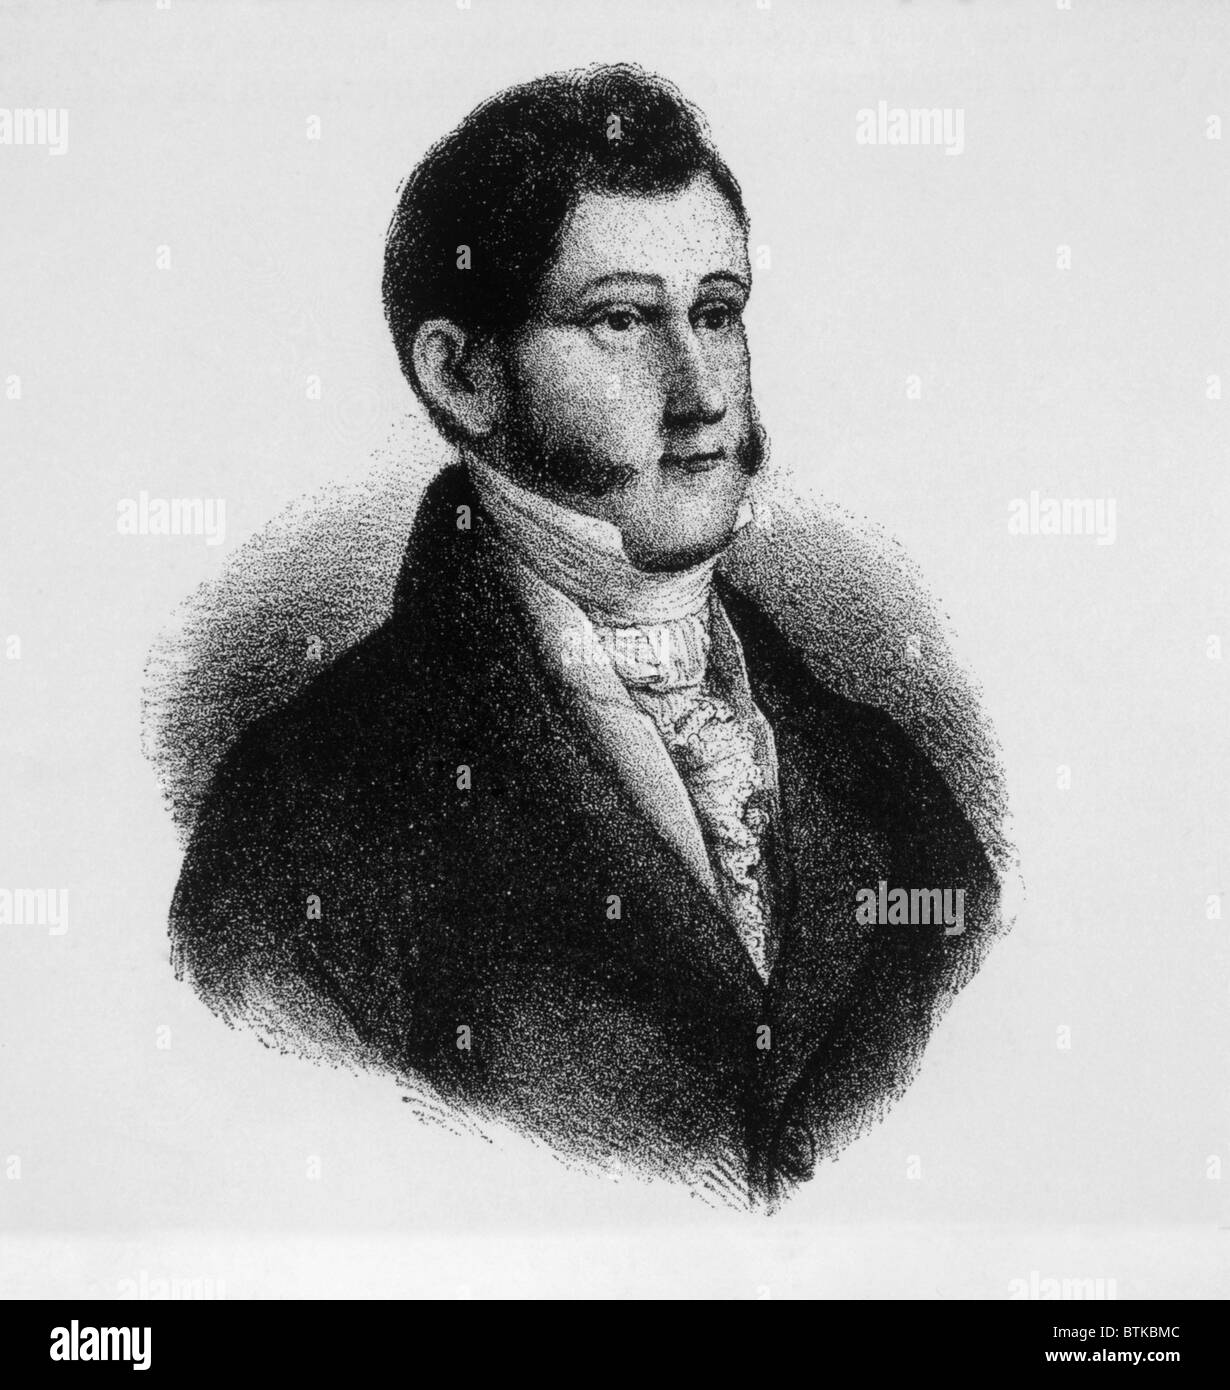 Augustin de Iturbide (1783-1824), emperor of Mexico (1822-1823)